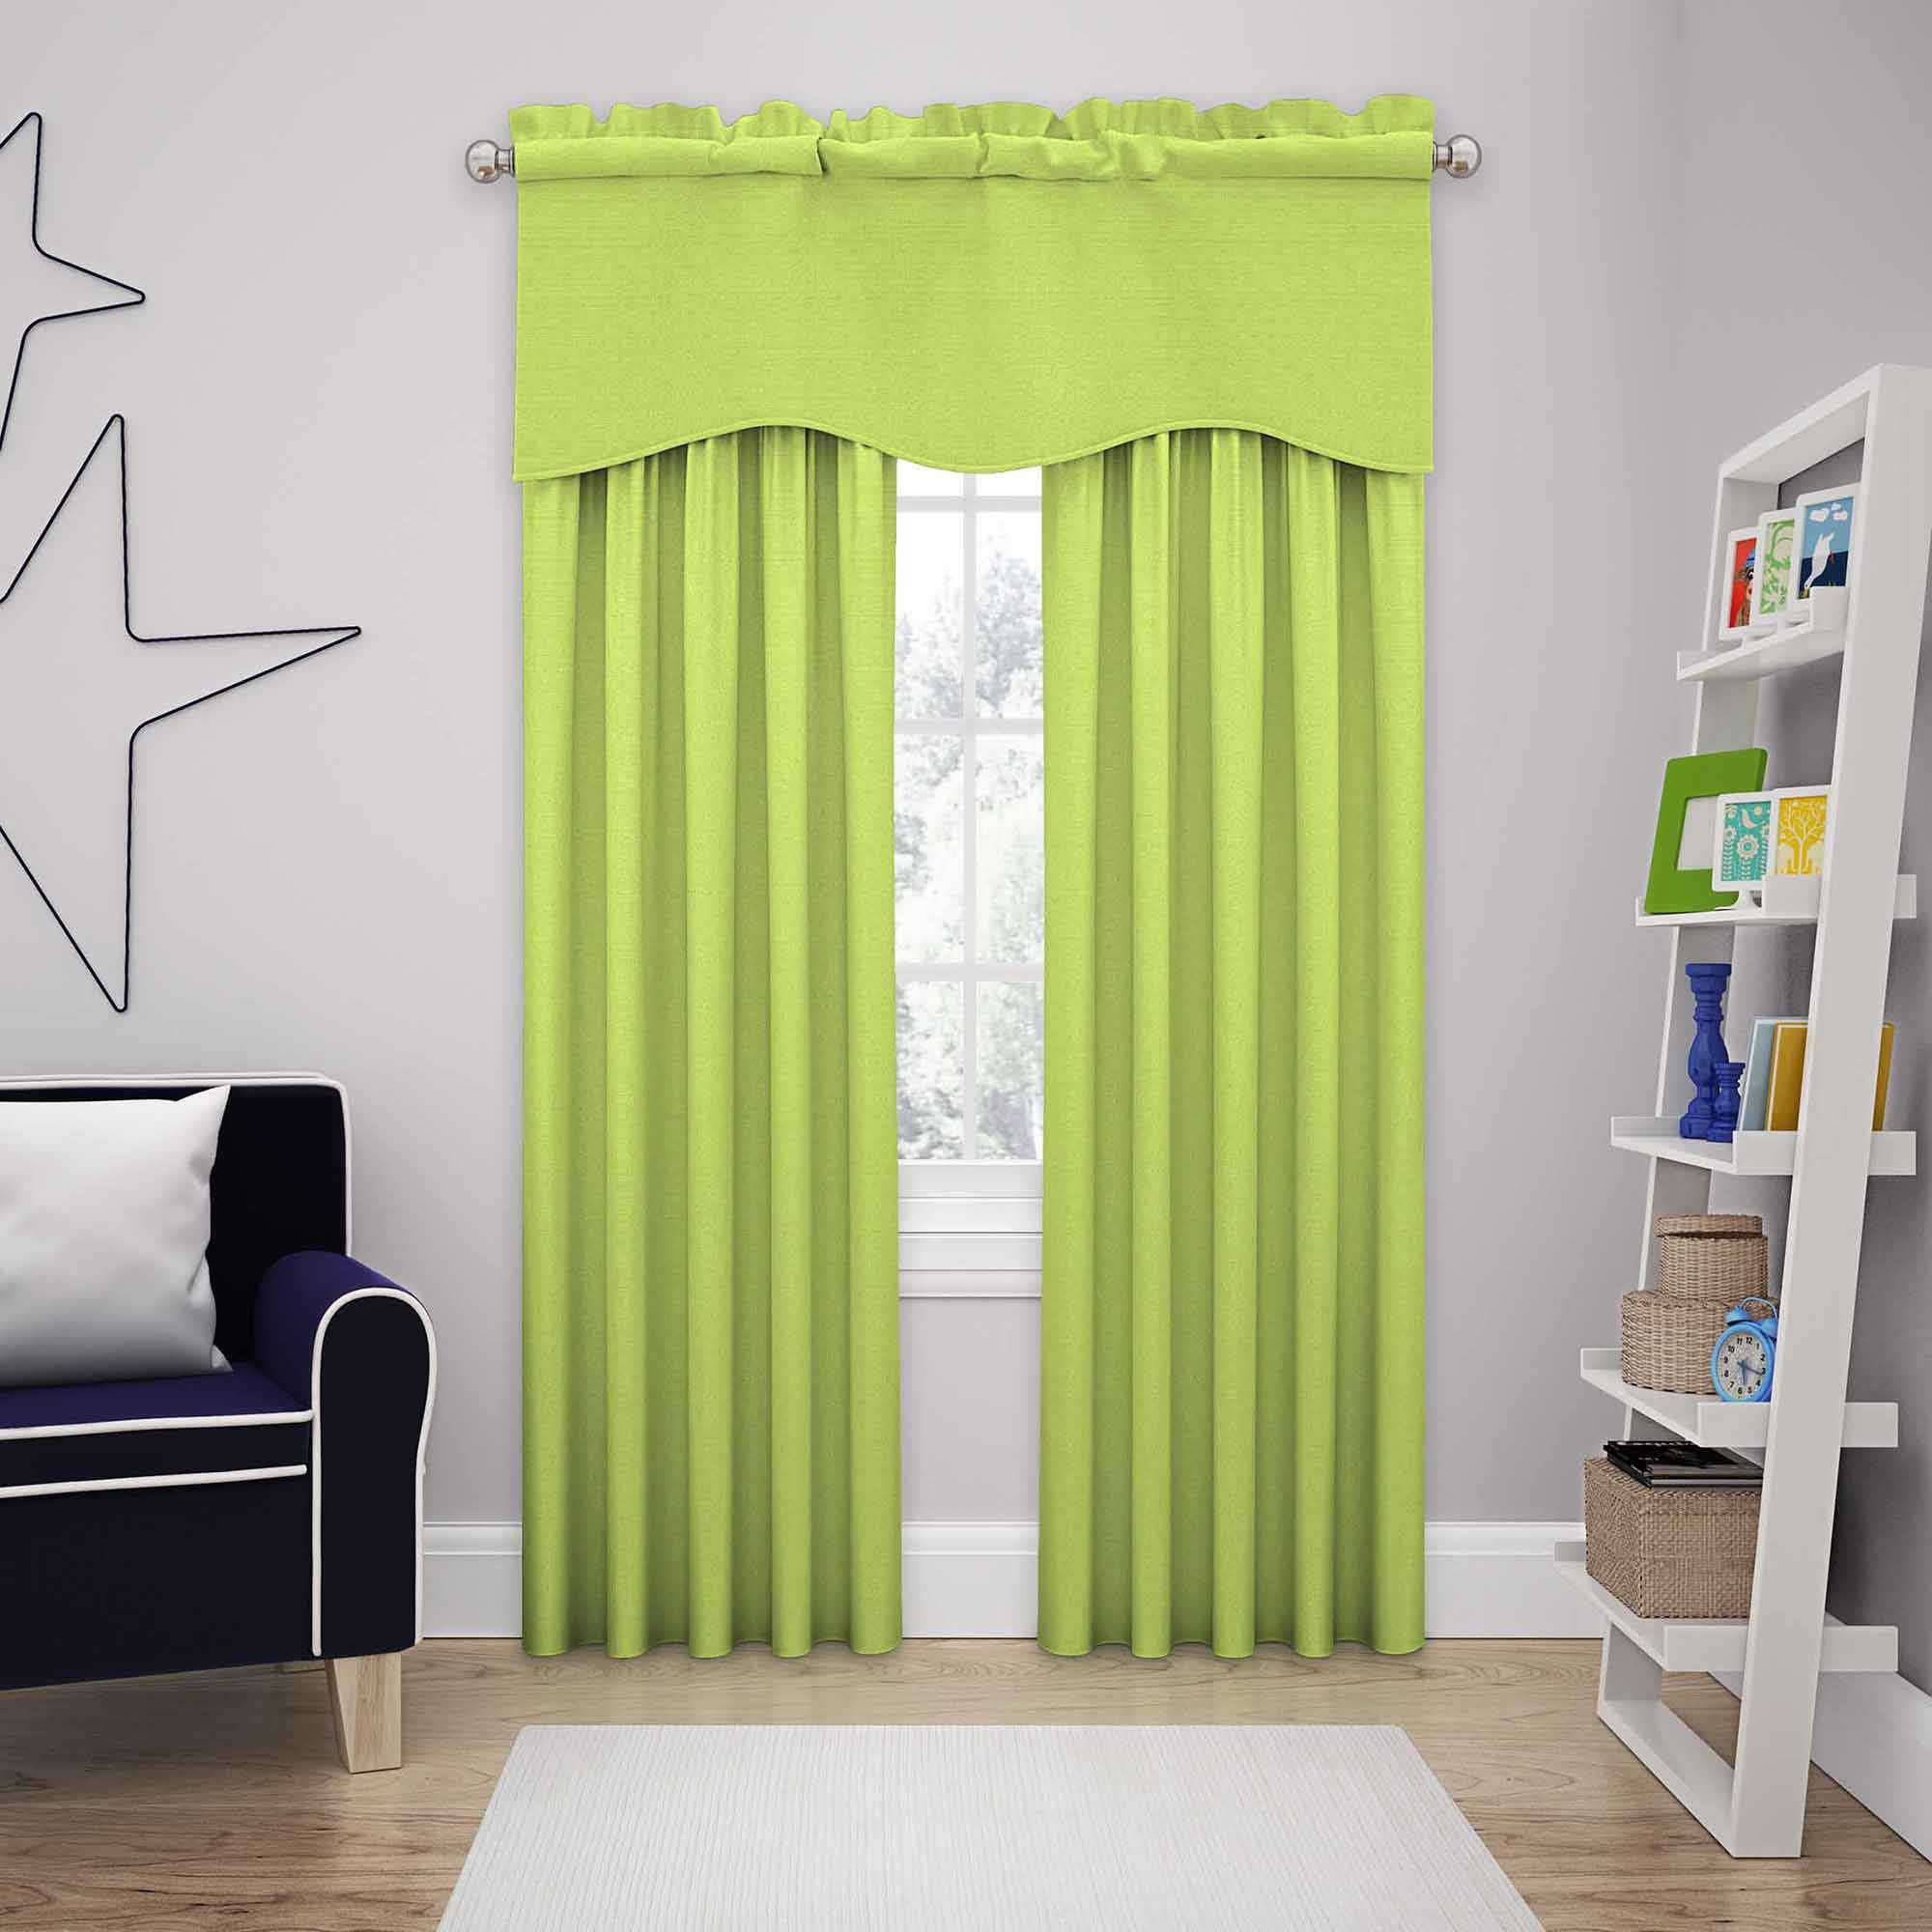 Bed bath and beyond window curtains  solarshield kate rod pocket room darkening window curtain panel and